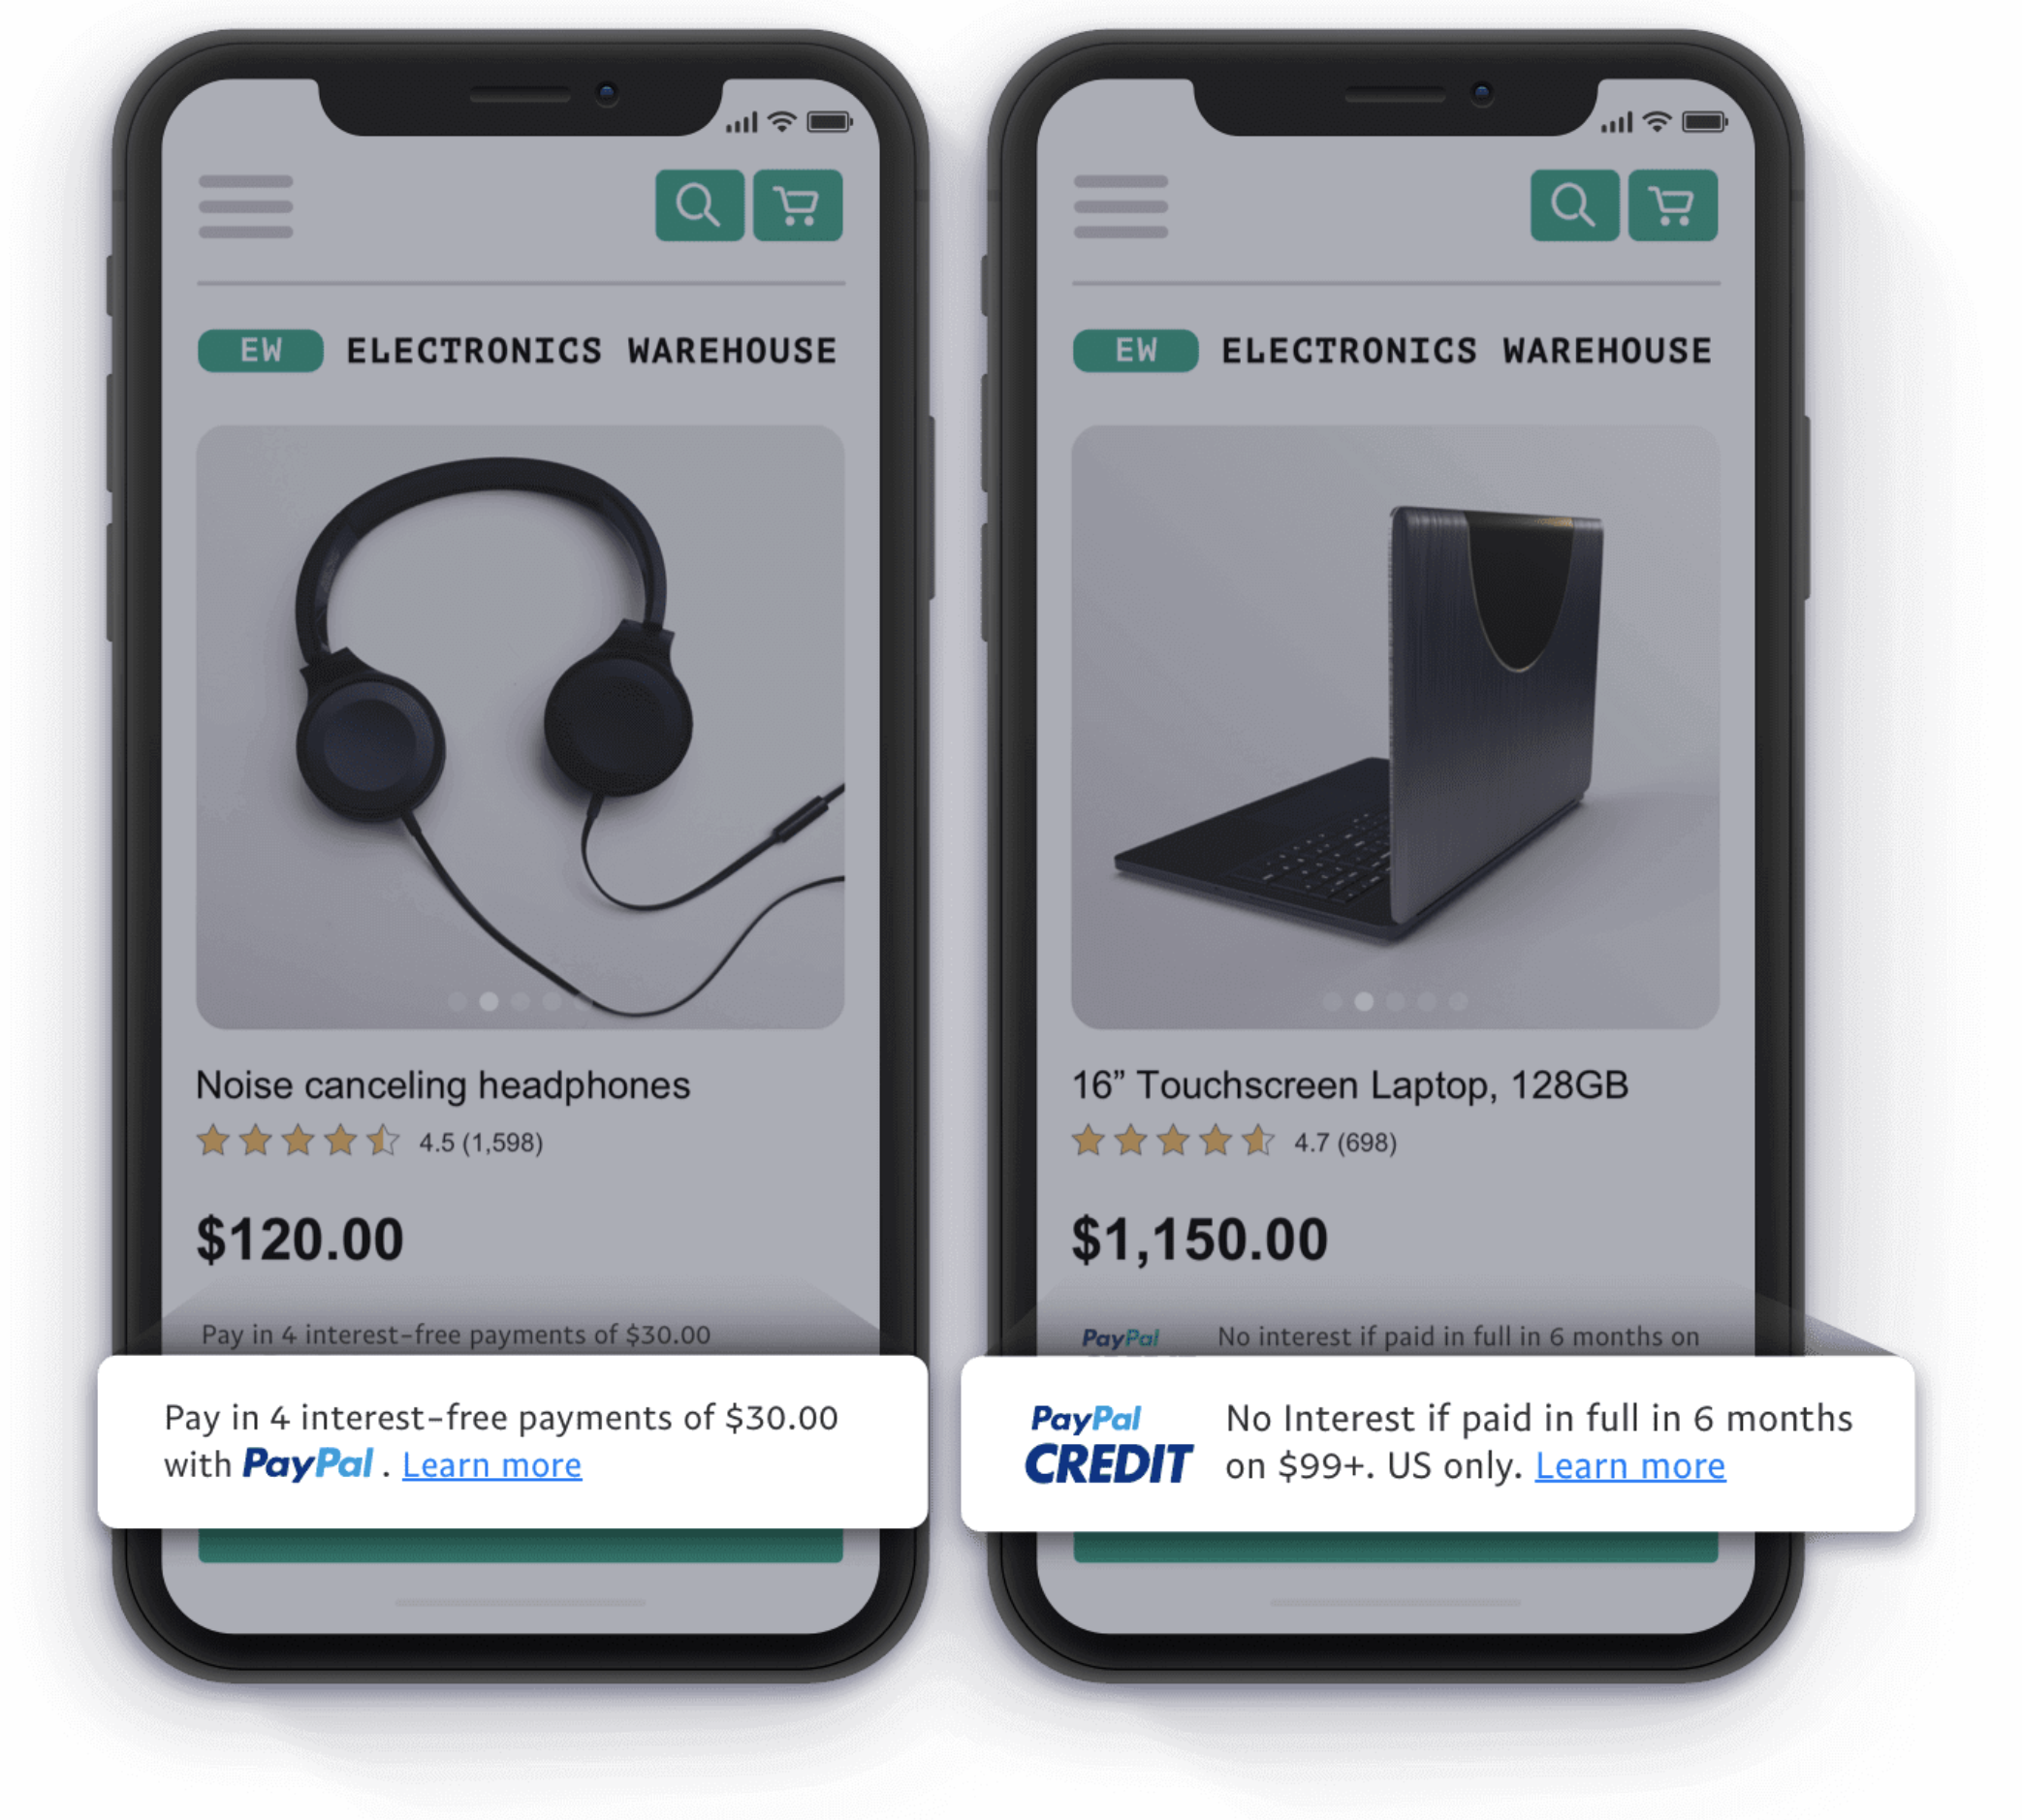 Example of pay later messaging on product pages